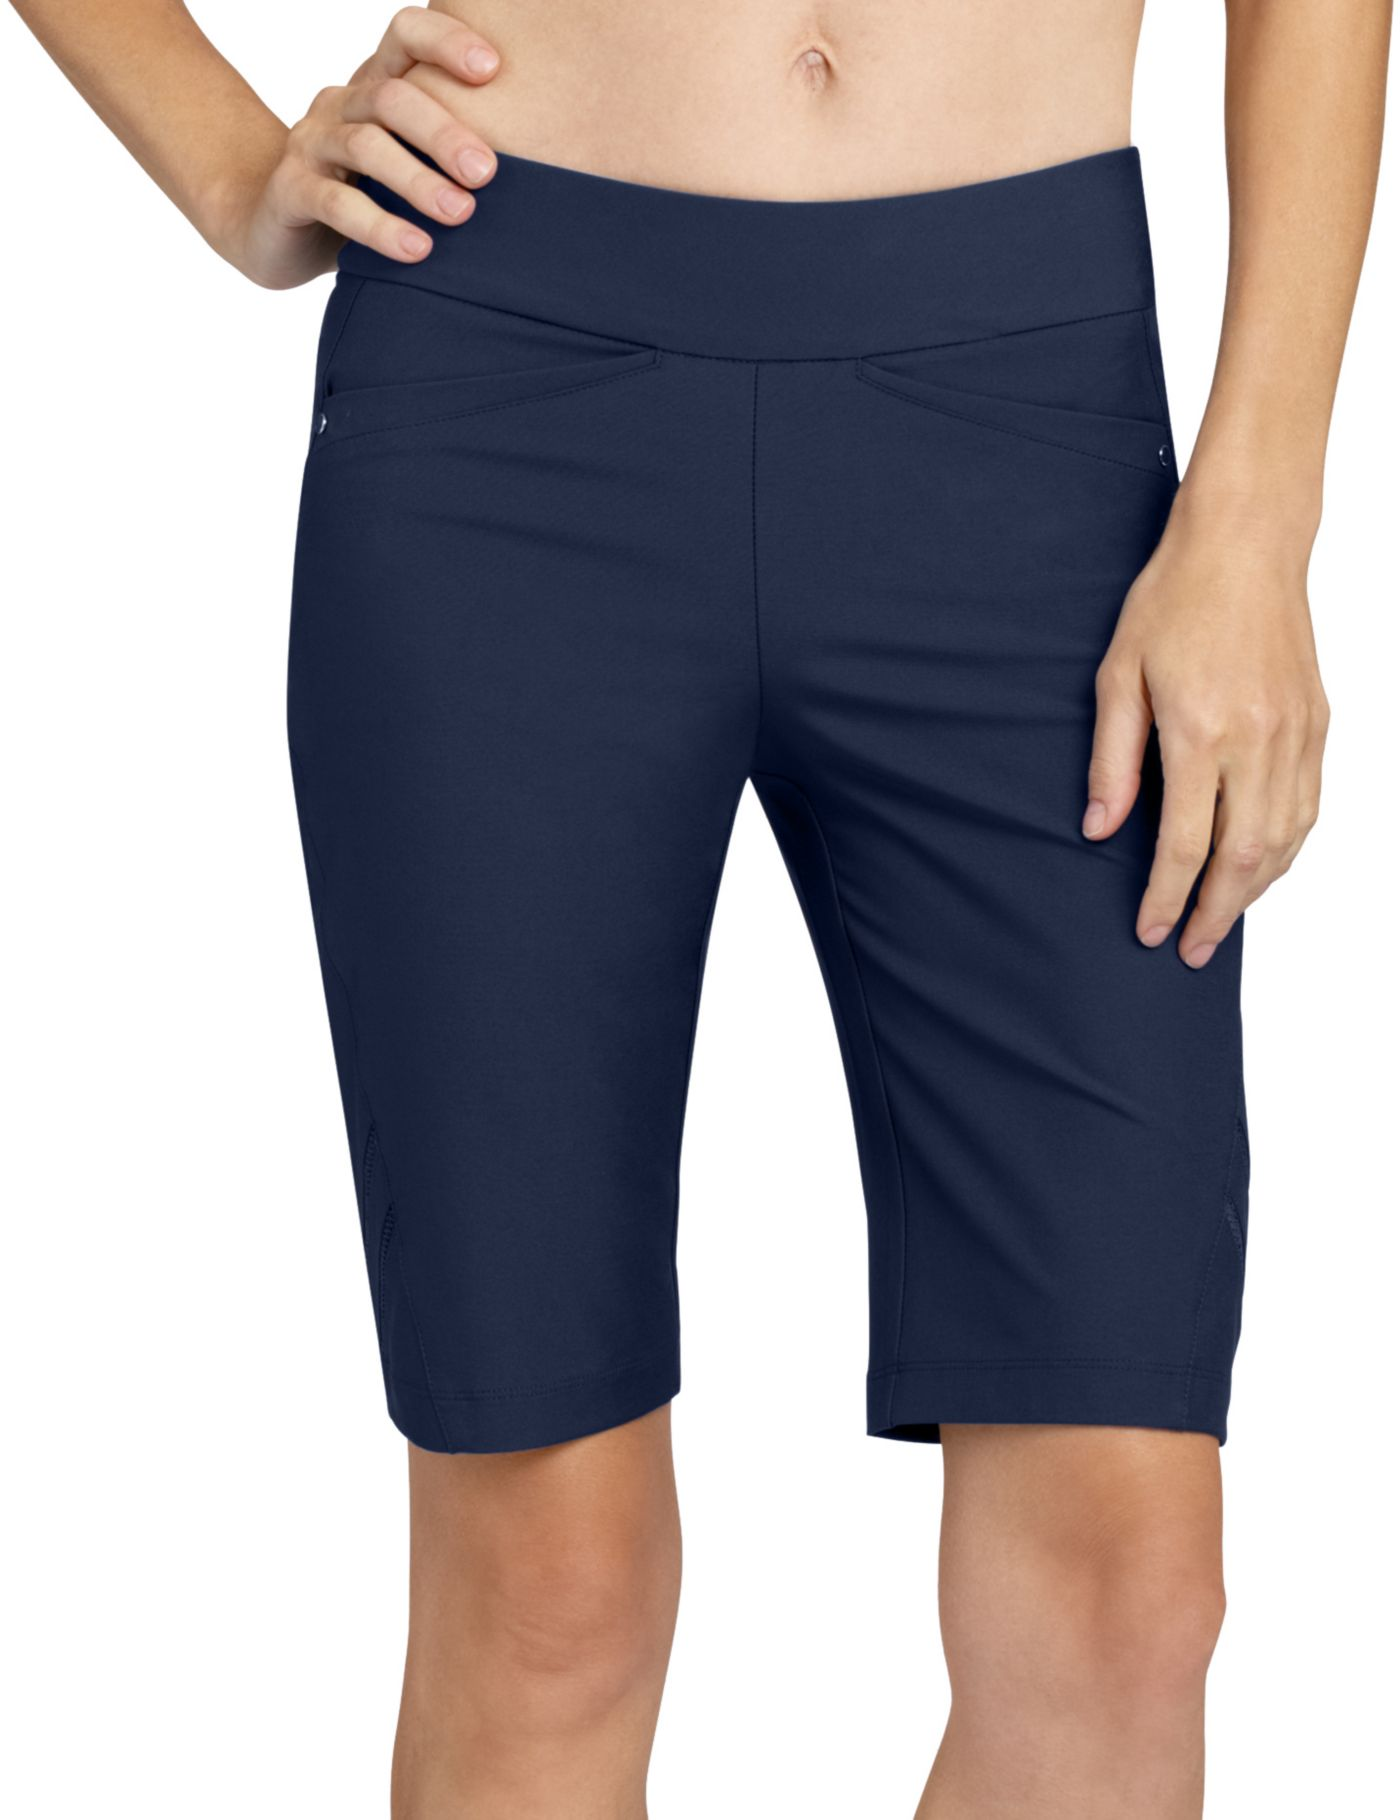 Tail Women's Golf Shorts